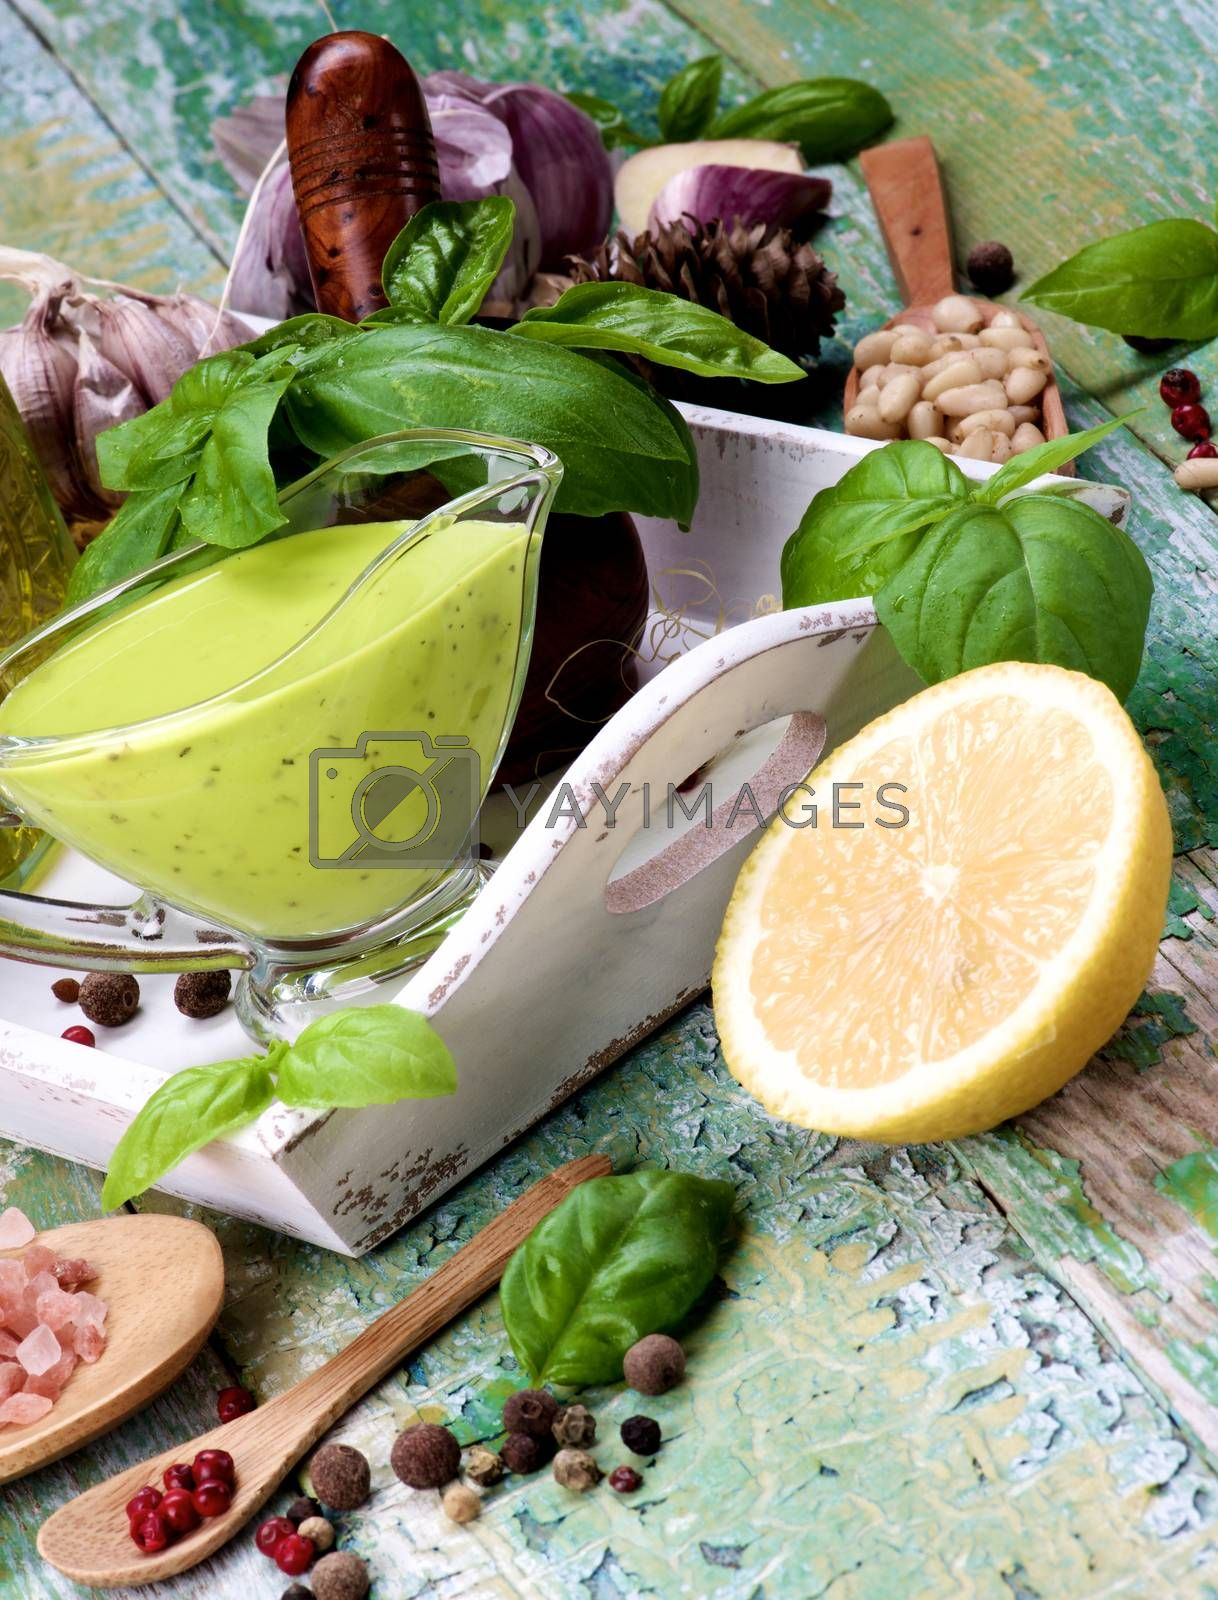 Arrangement of Homemade Freshly Made Creamy Pesto Sauce in Glass Gravy Boat with Ingredients in White Wooden Tray closeup Cracked Wooden background